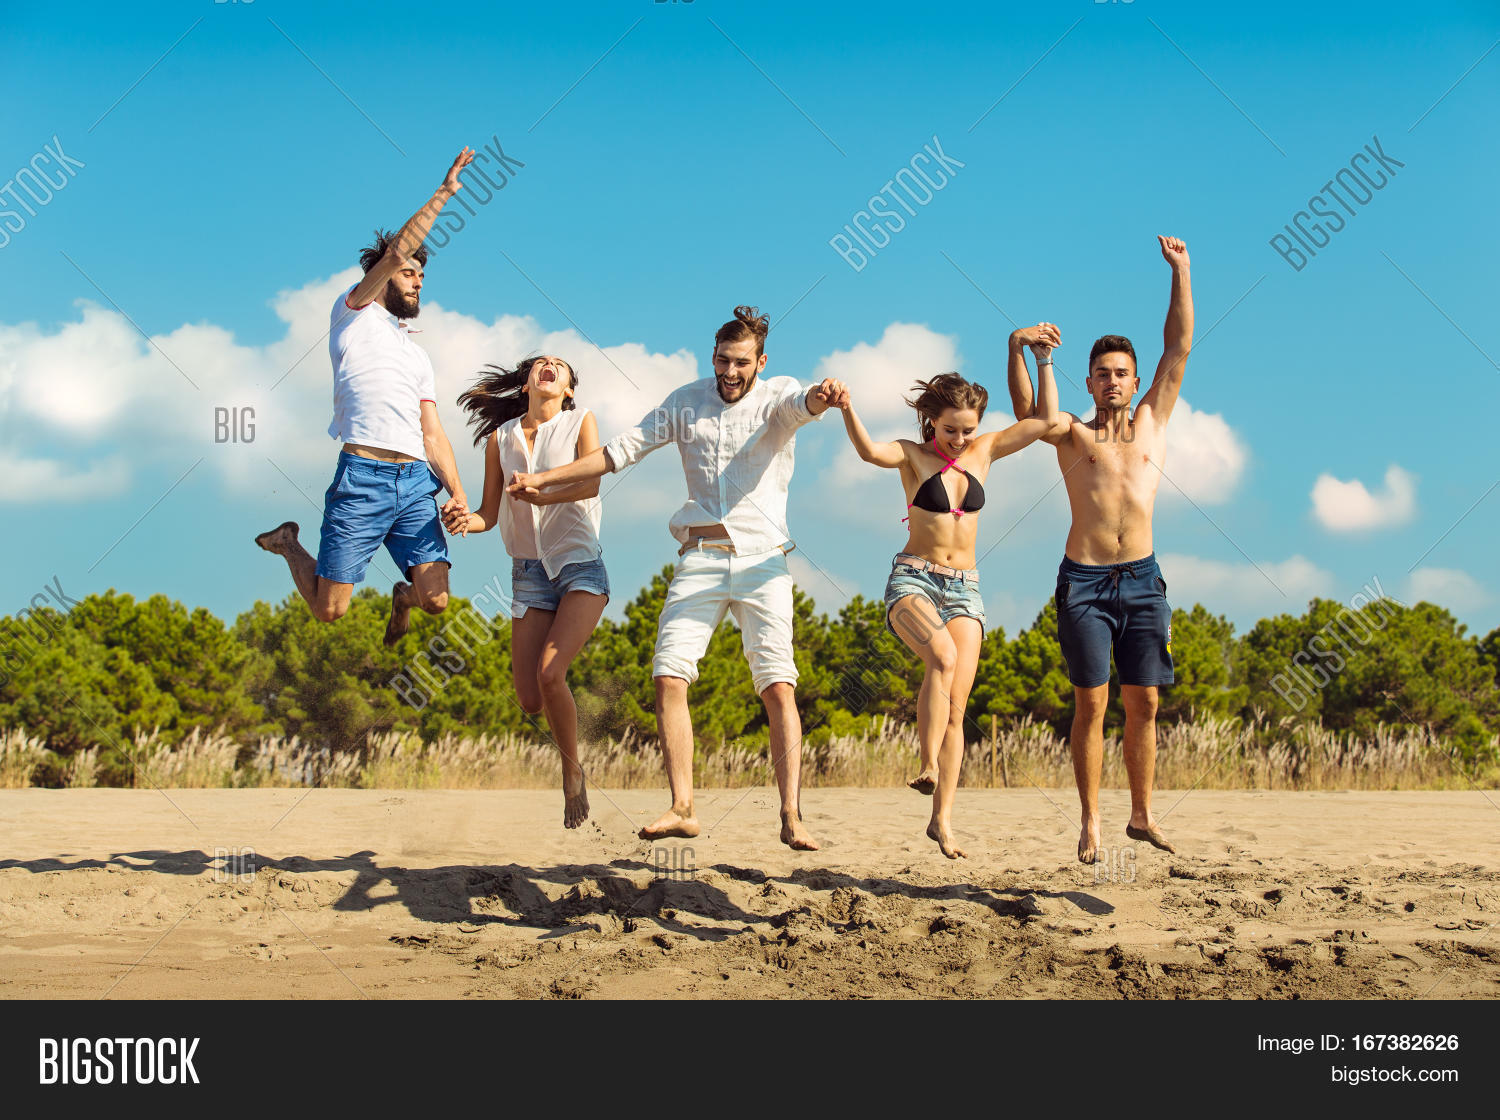 Group Of Friends Together On The Beach Having Fun Happy Young People Jumping